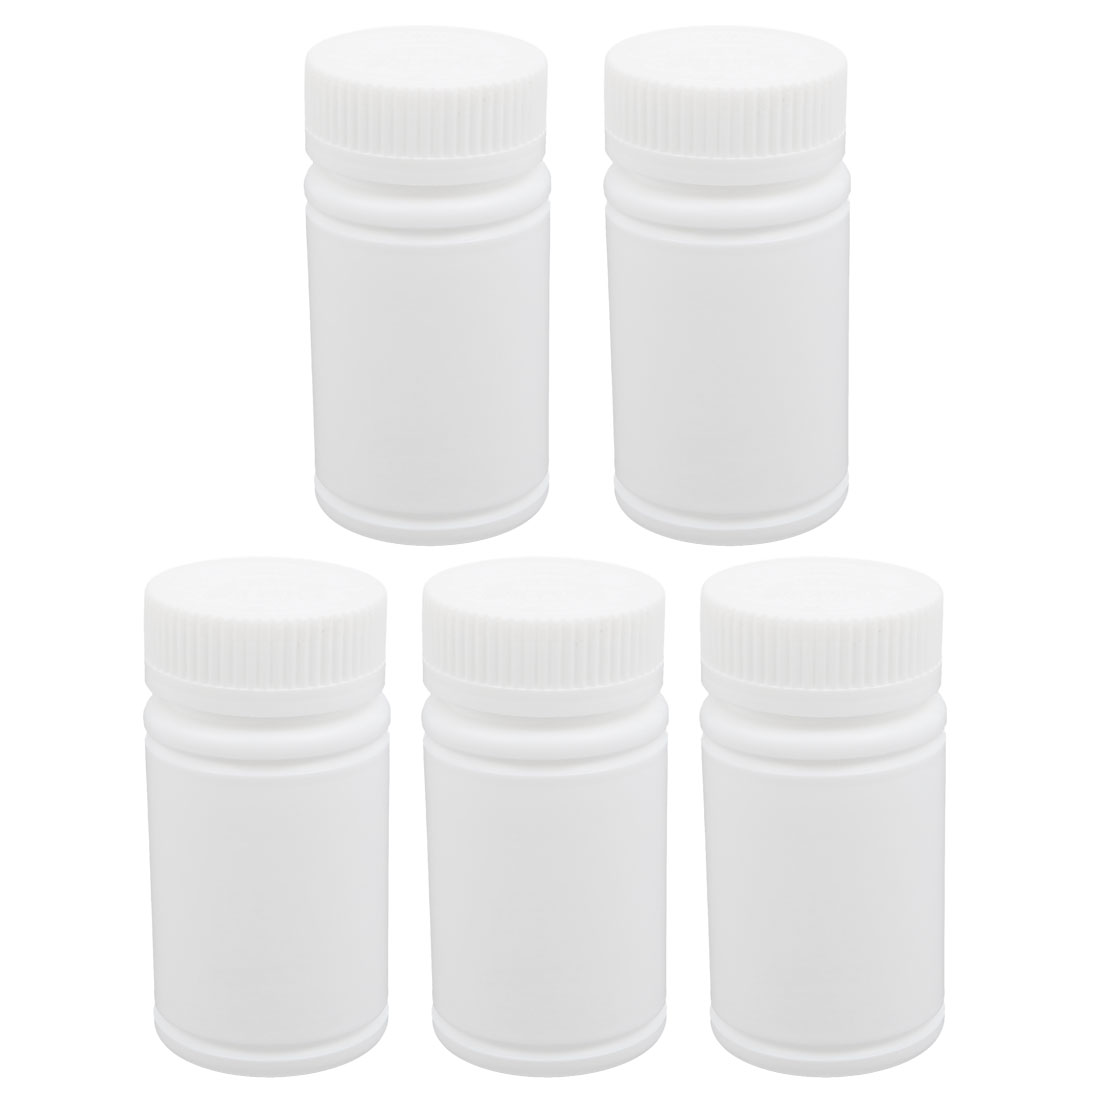 5Pcs 120ml Plastic White Wide Mouth Round Solid Powder Bottle Storage Jar